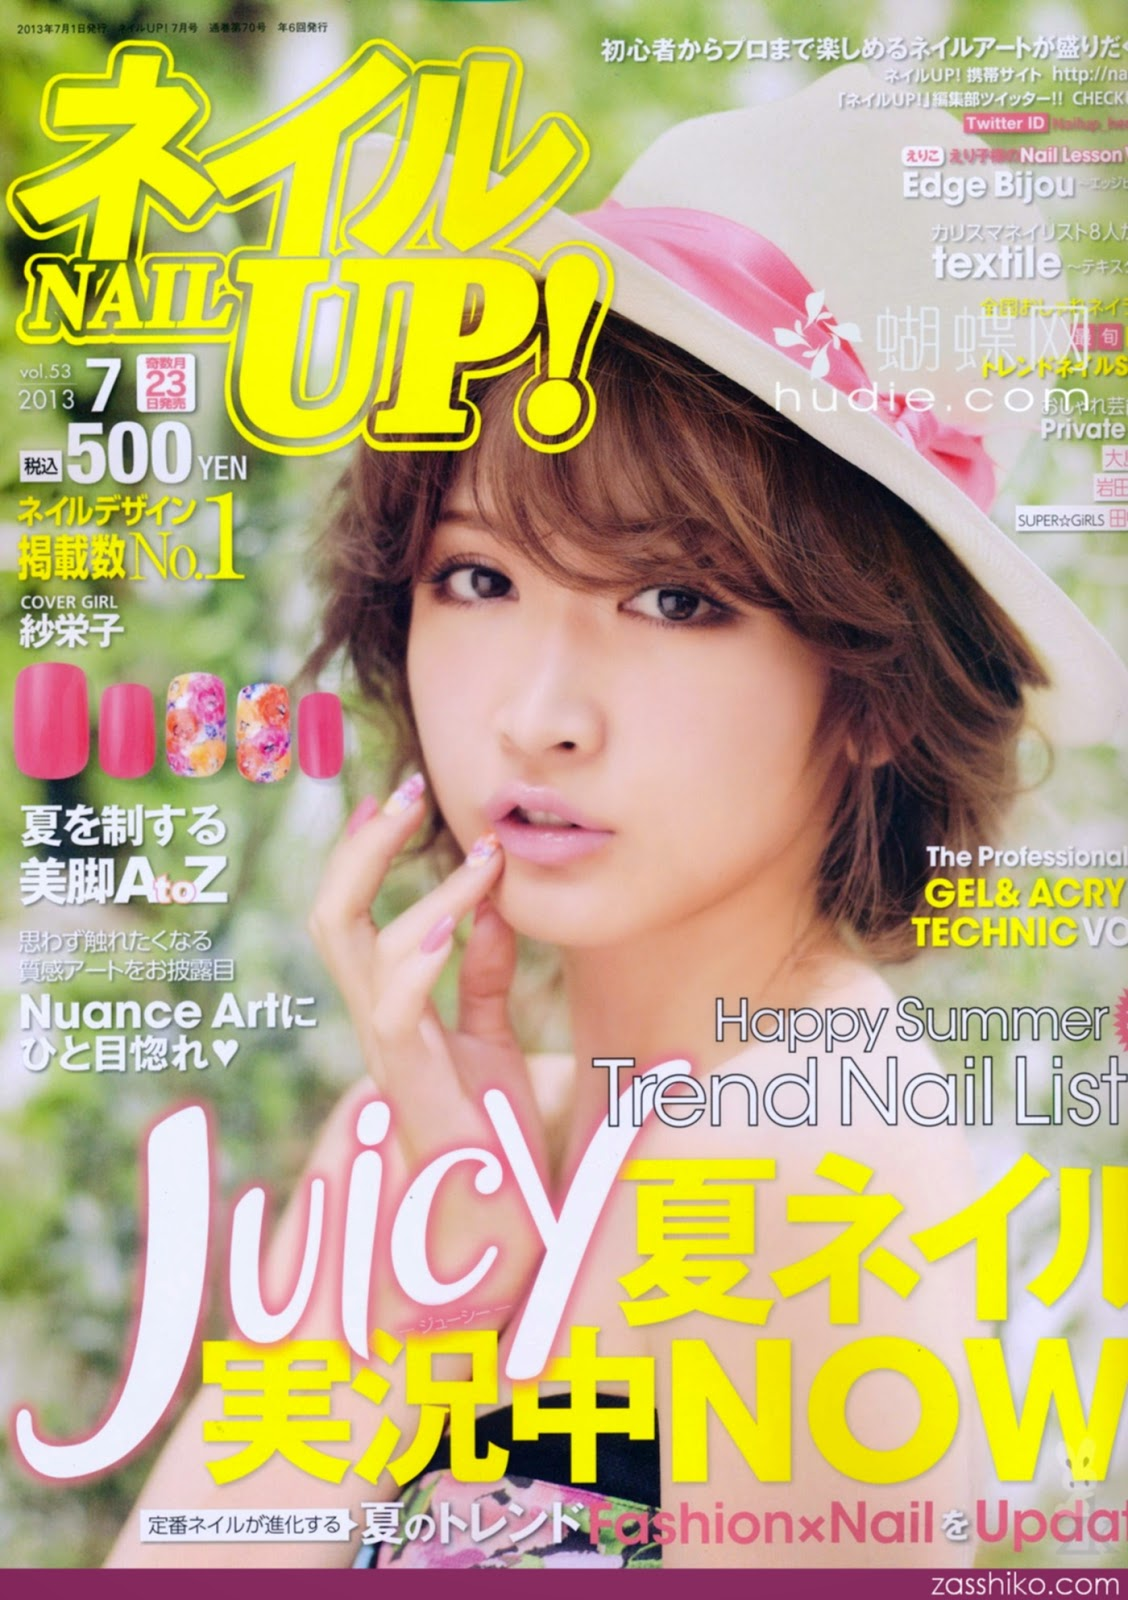 Scans | Nail Up! July 2013